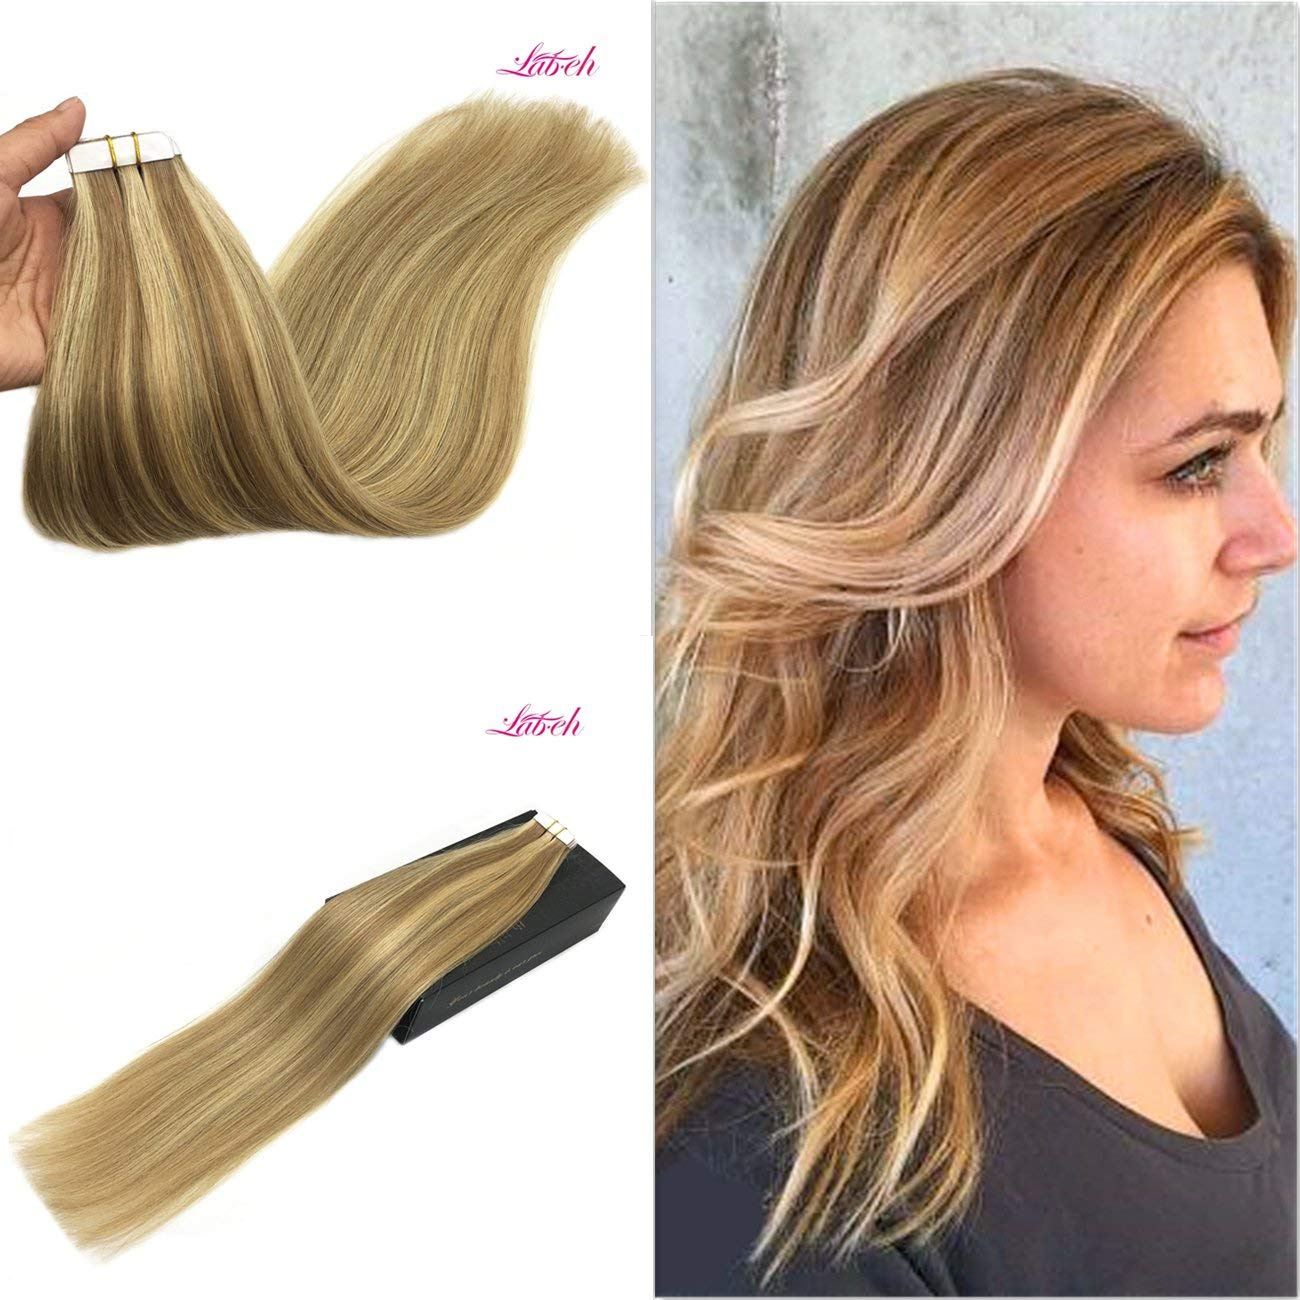 Cheap 14 Inch Blonde Hair Extensions Find 14 Inch Blonde Hair